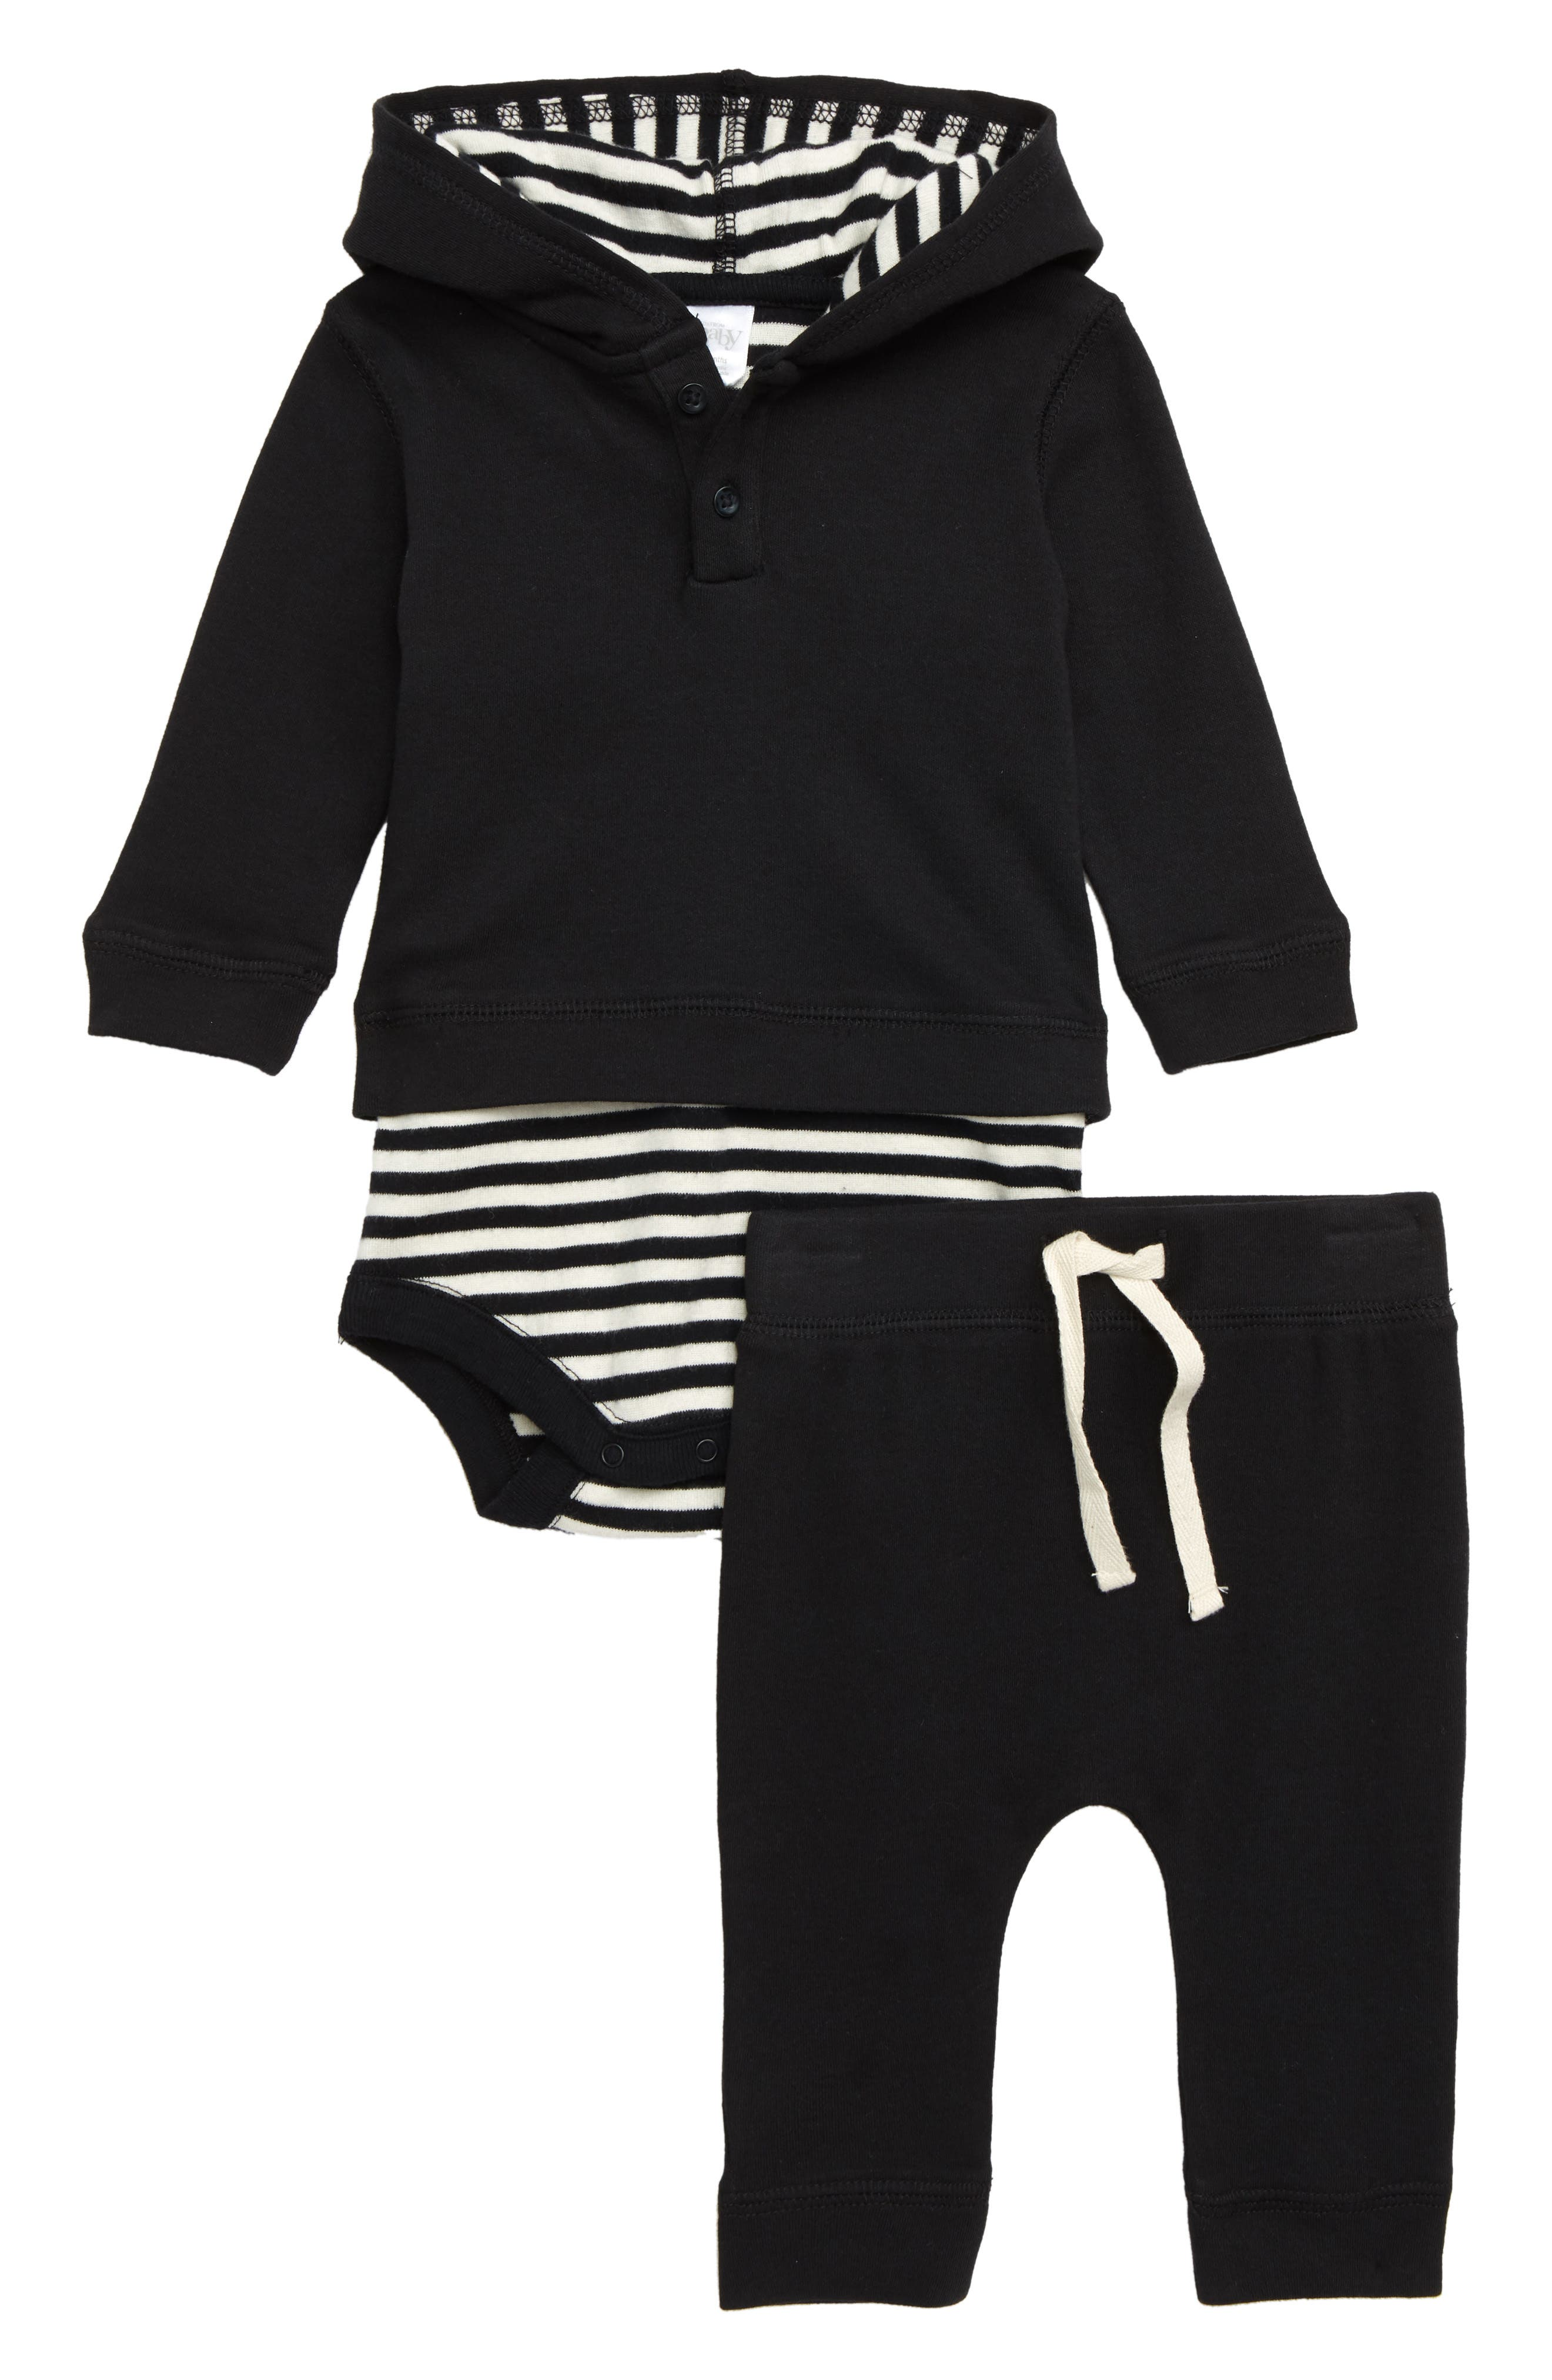 NORDSTROM BABY, Hooded Bodysuit & Sweatpants Set, Main thumbnail 1, color, 001